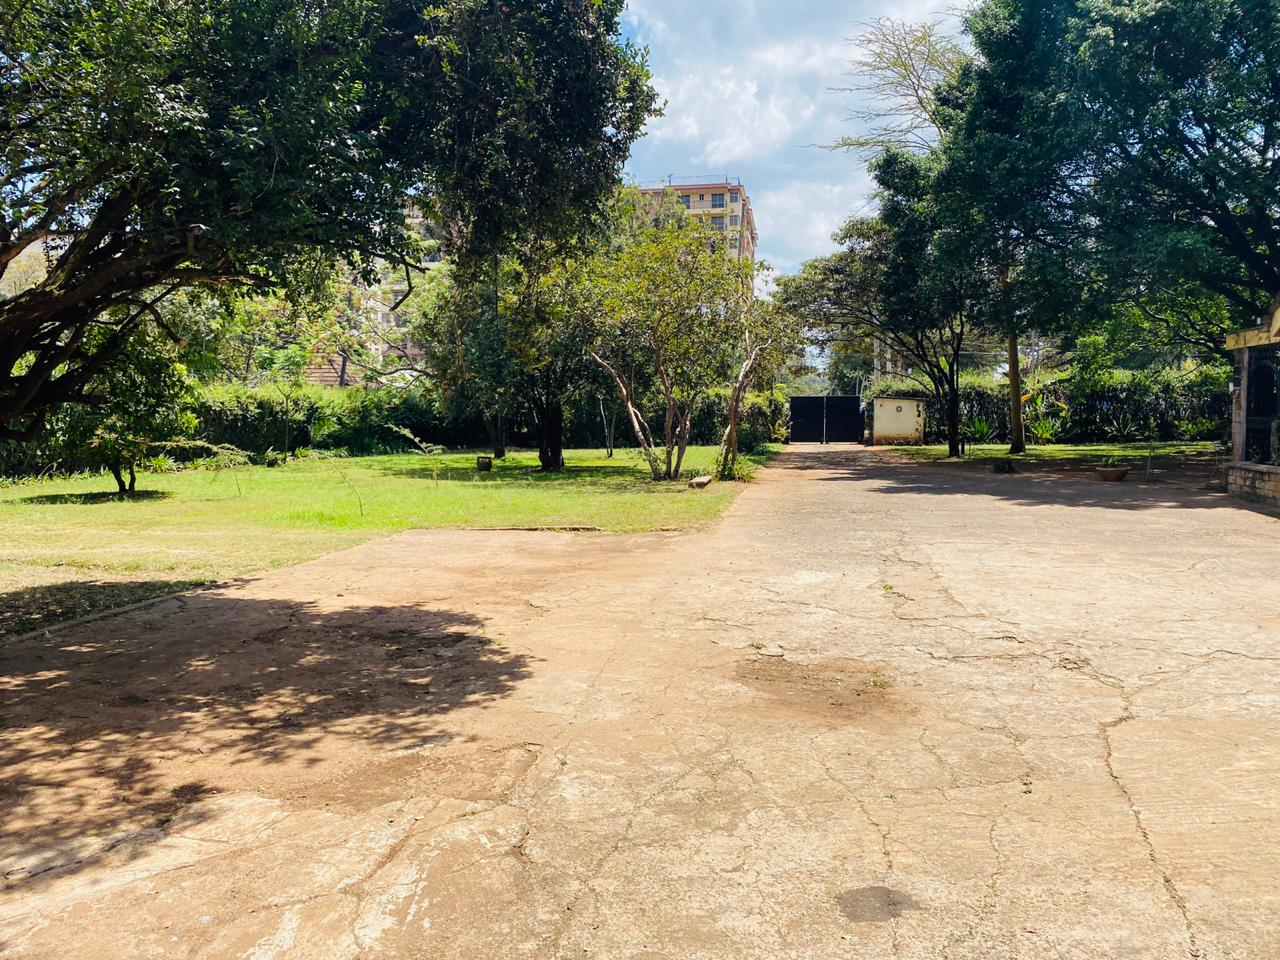 1.3 Acres of Prime Land for Sale in Kilimani off Argwings Kodhek Road, Going for Ksh650M – Negotiable